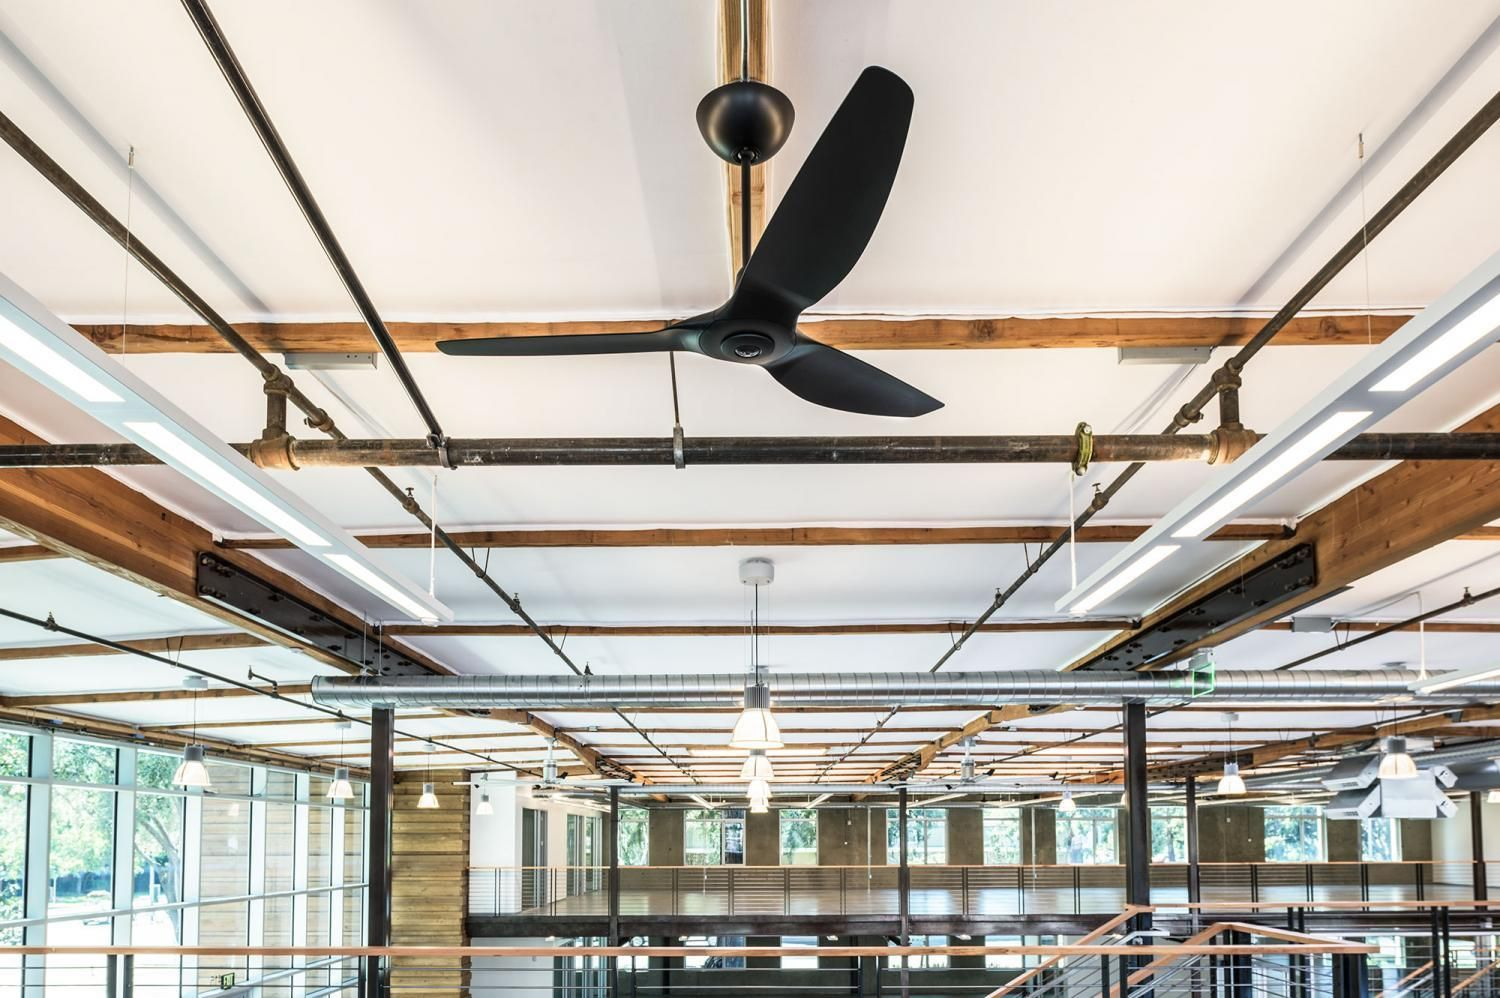 Haiku Ceiling Fans By Large Ceiling Fans Outdoor Ceiling Fans